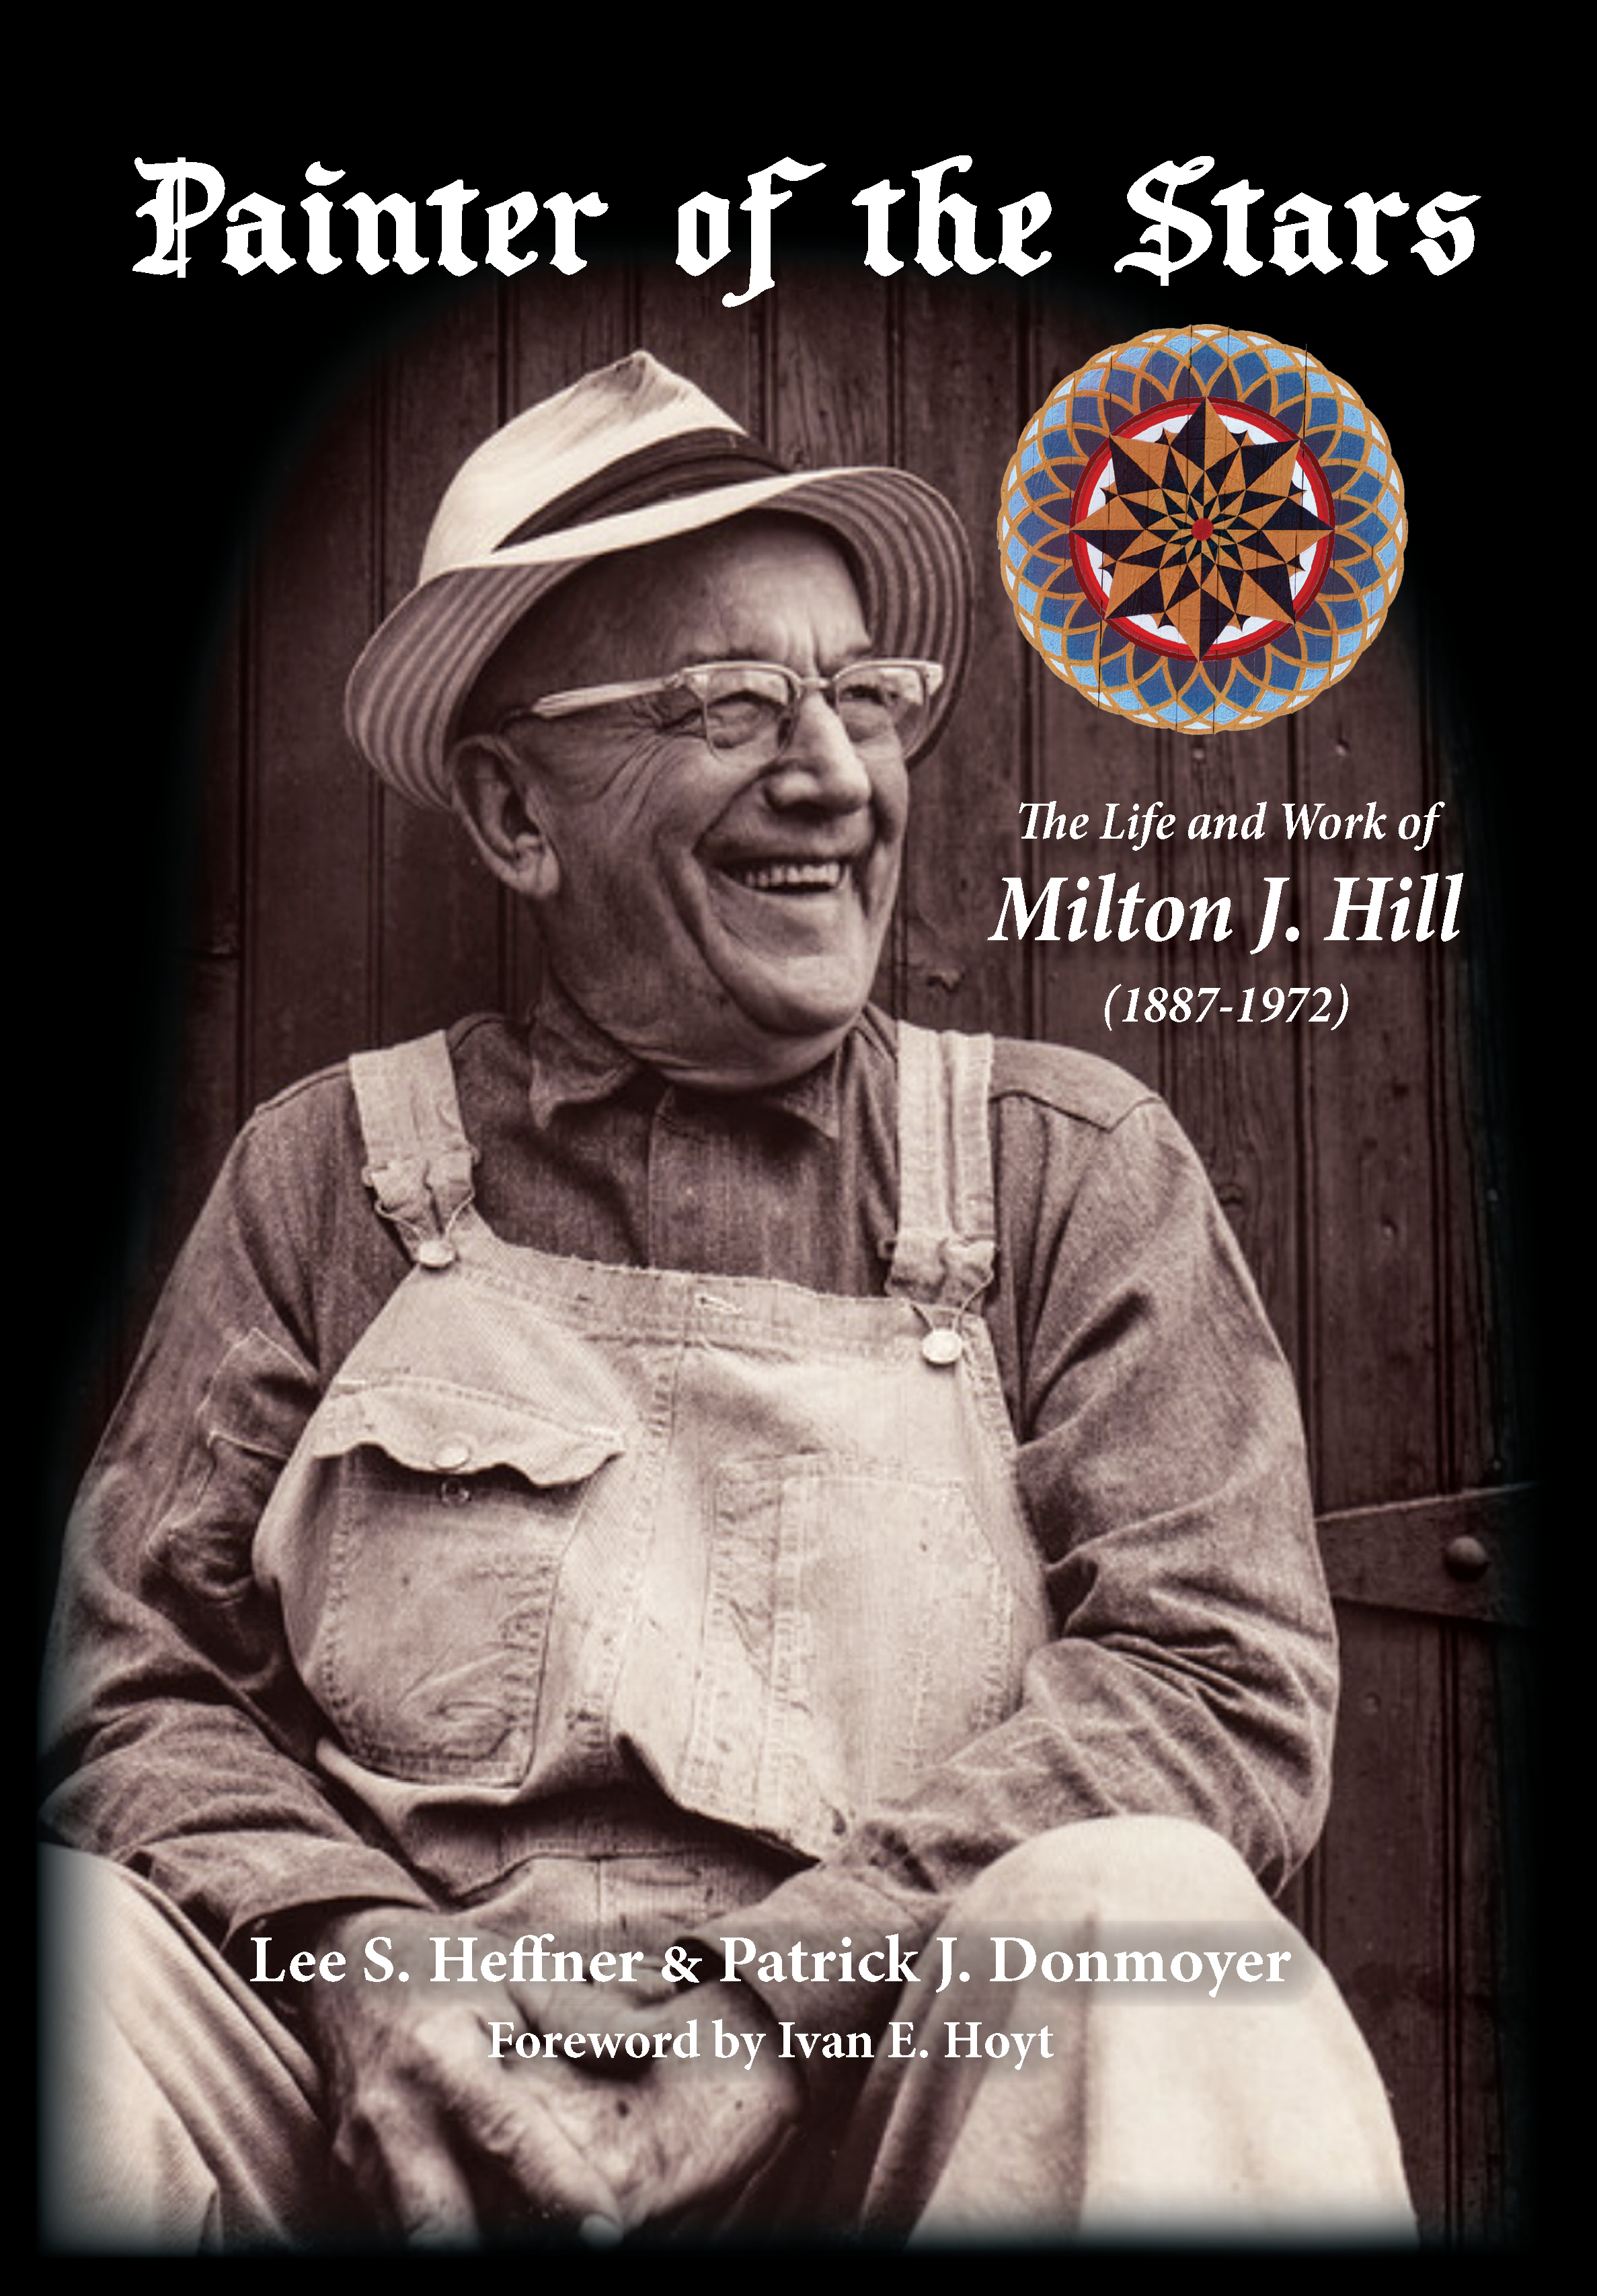 "Front Cover: ""Painter of the Stars: The Life and Work of Milton J. Hill (1887-1972) by Lee S. Heffner & Patrick Donmoyer."" Is an image of a man in overalls sitting with hands clasped. He has a brimed hat and is smiling."